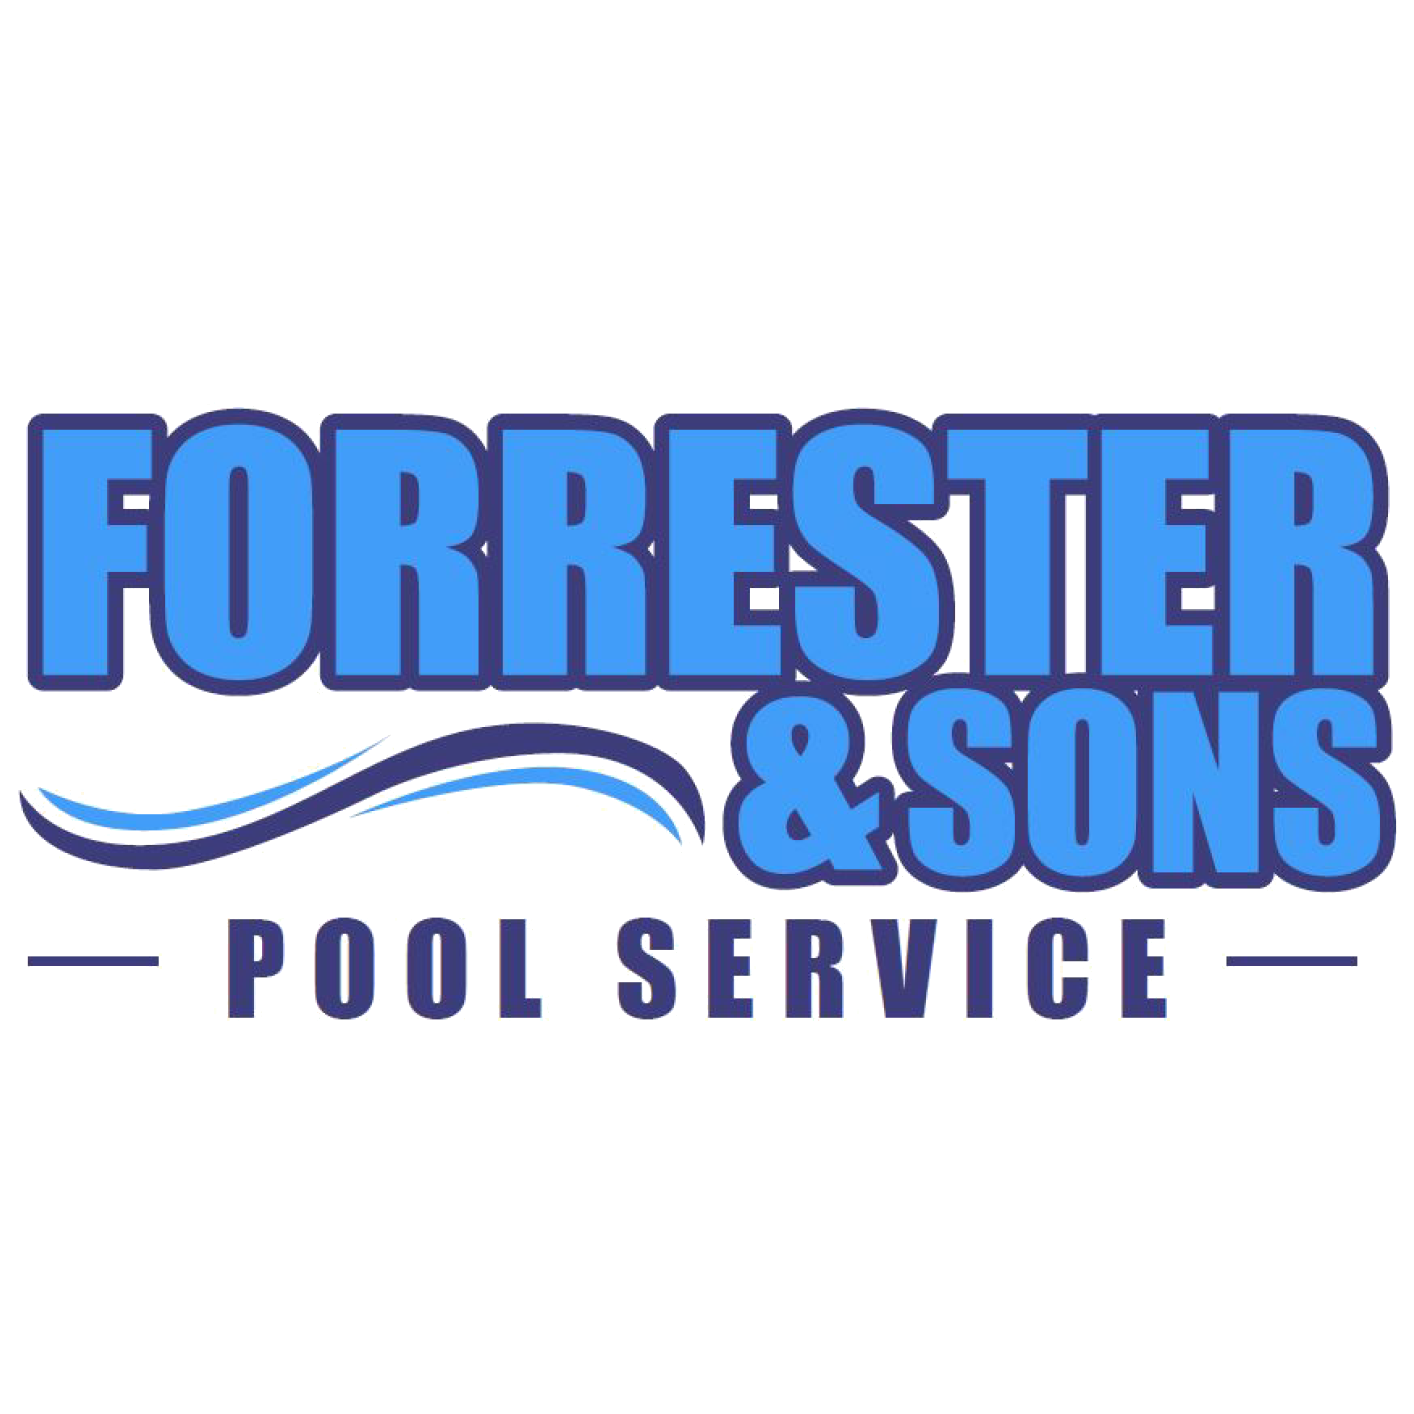 Forrester & Sons Pool Service Inc